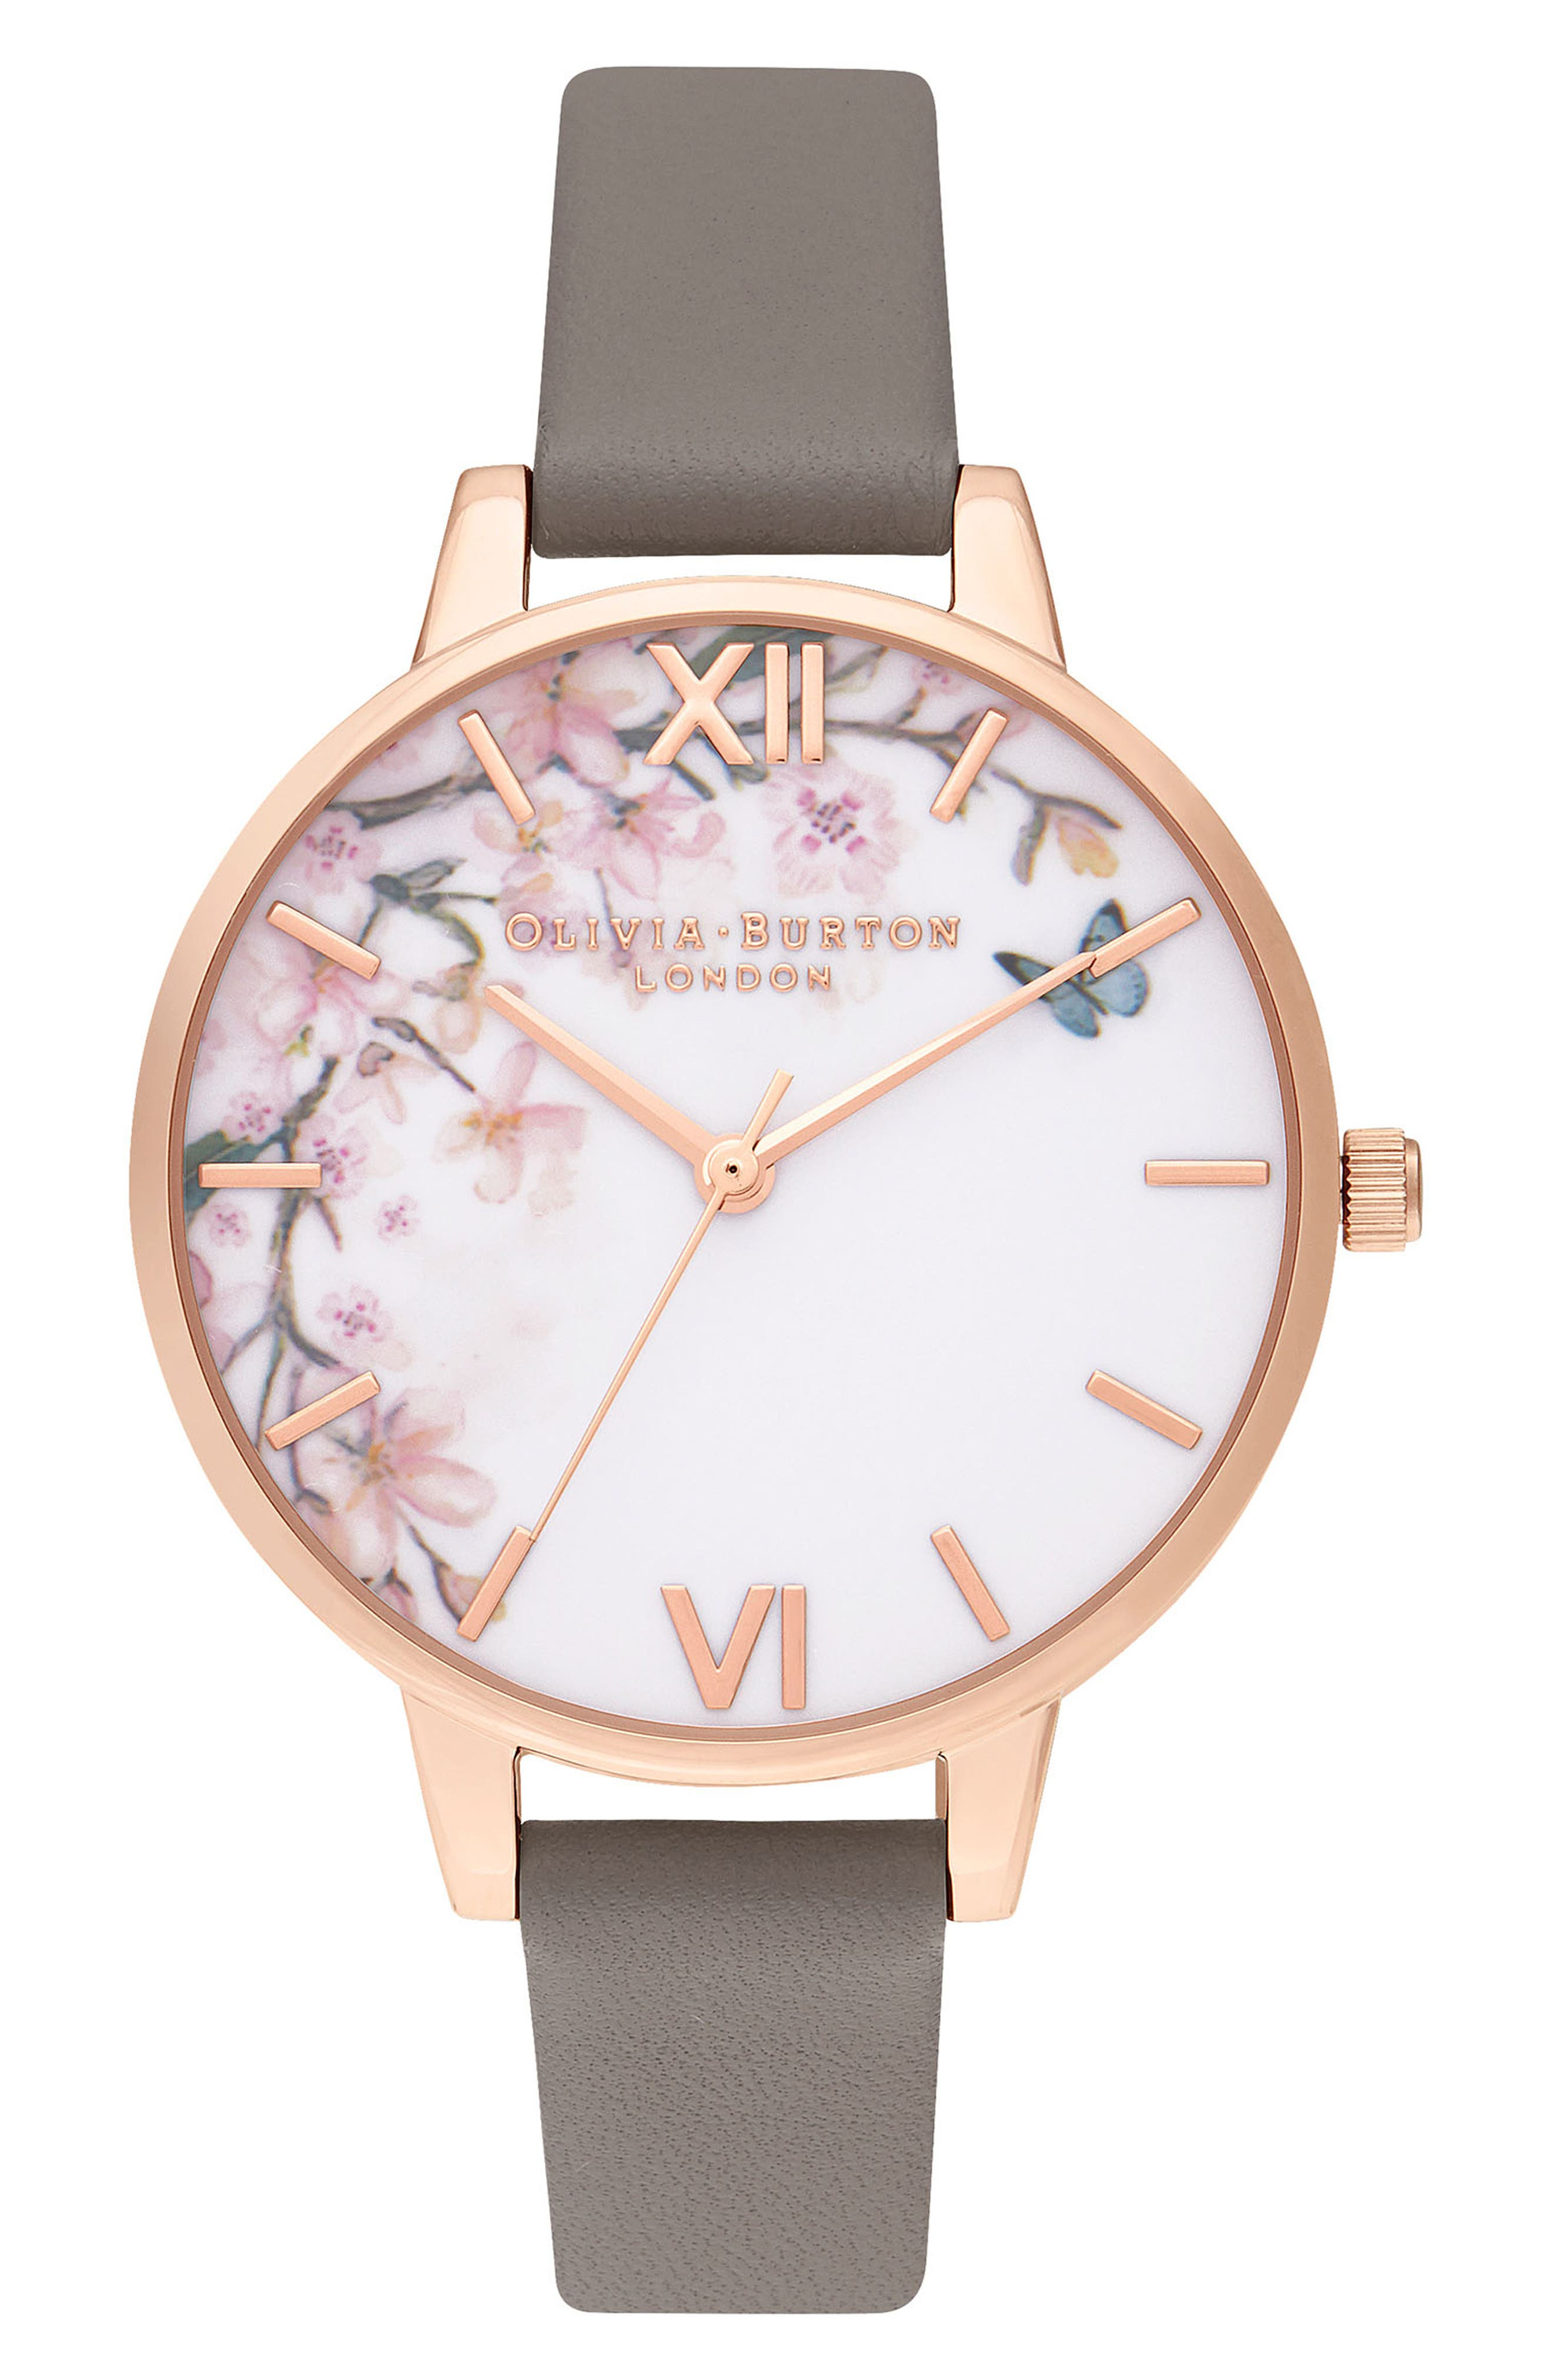 OLIVIA BURTON, Pretty Blossom Leather Strap Watch, 34mm, Main thumbnail 1, color, GREY / WHITE/ ROSE GOLD